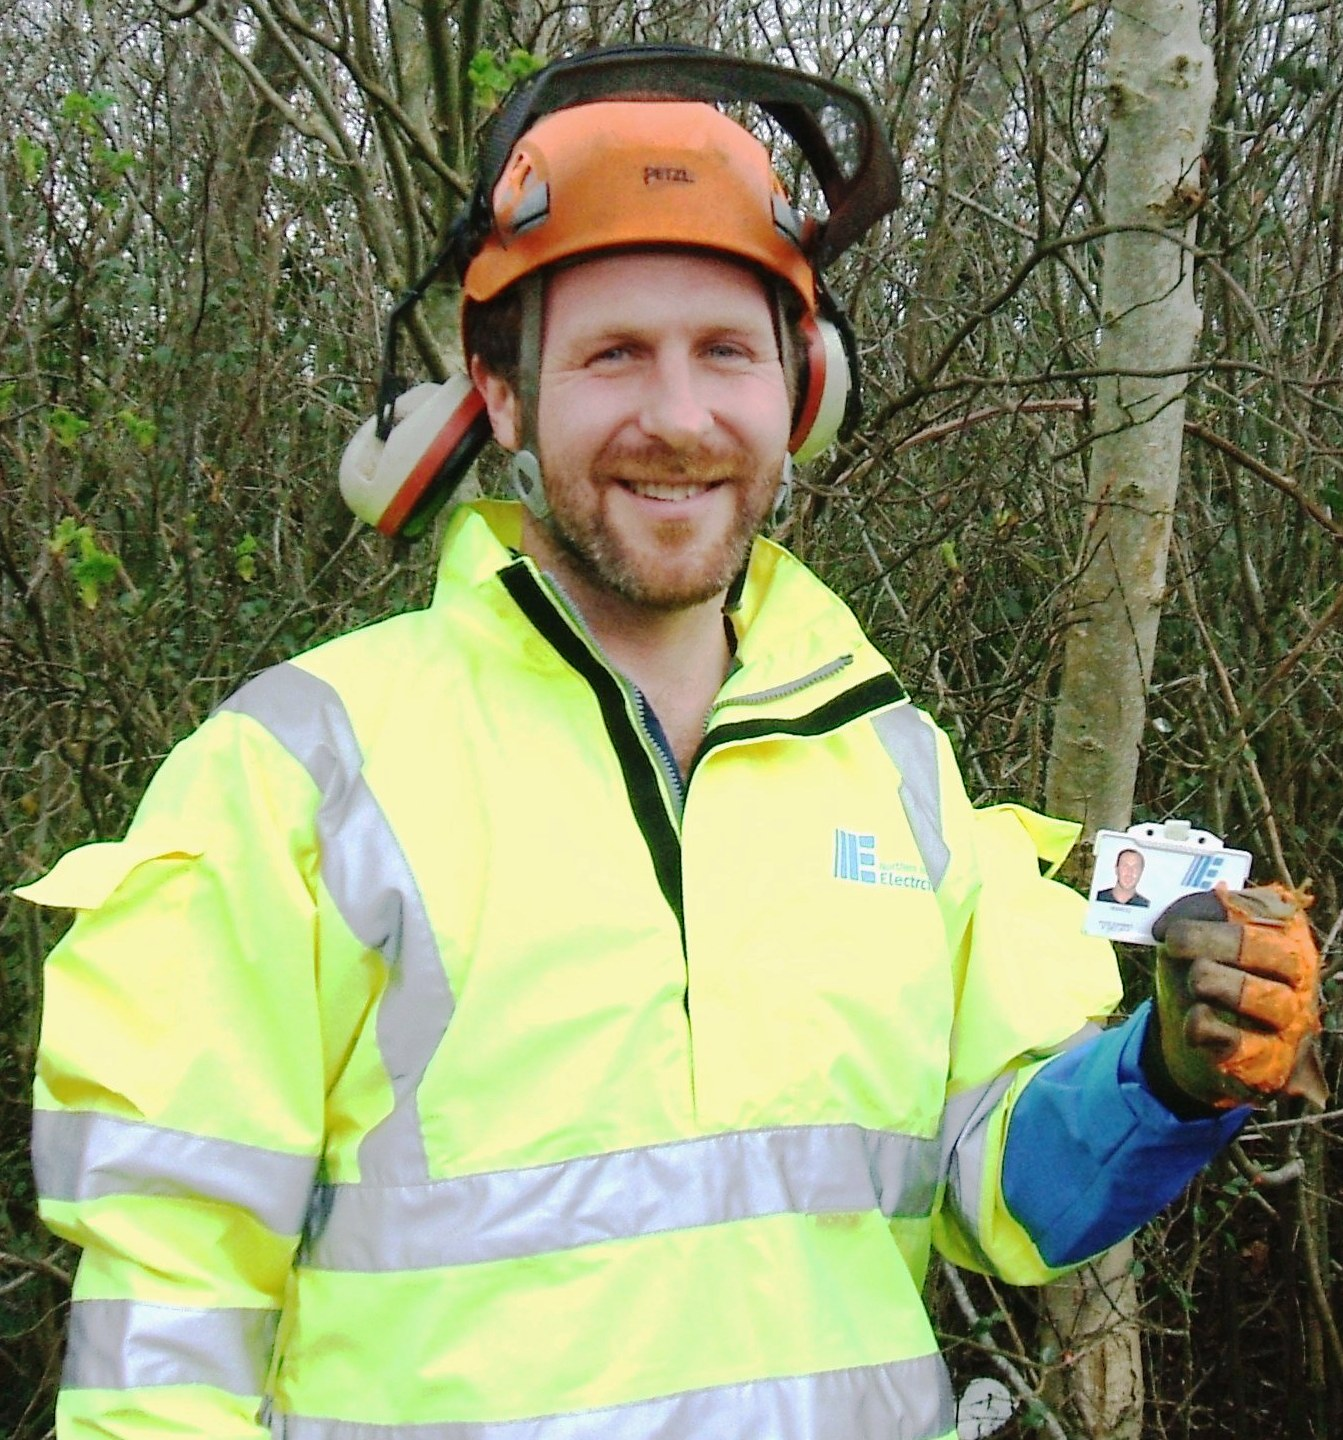 NIE tree cutter with ID card